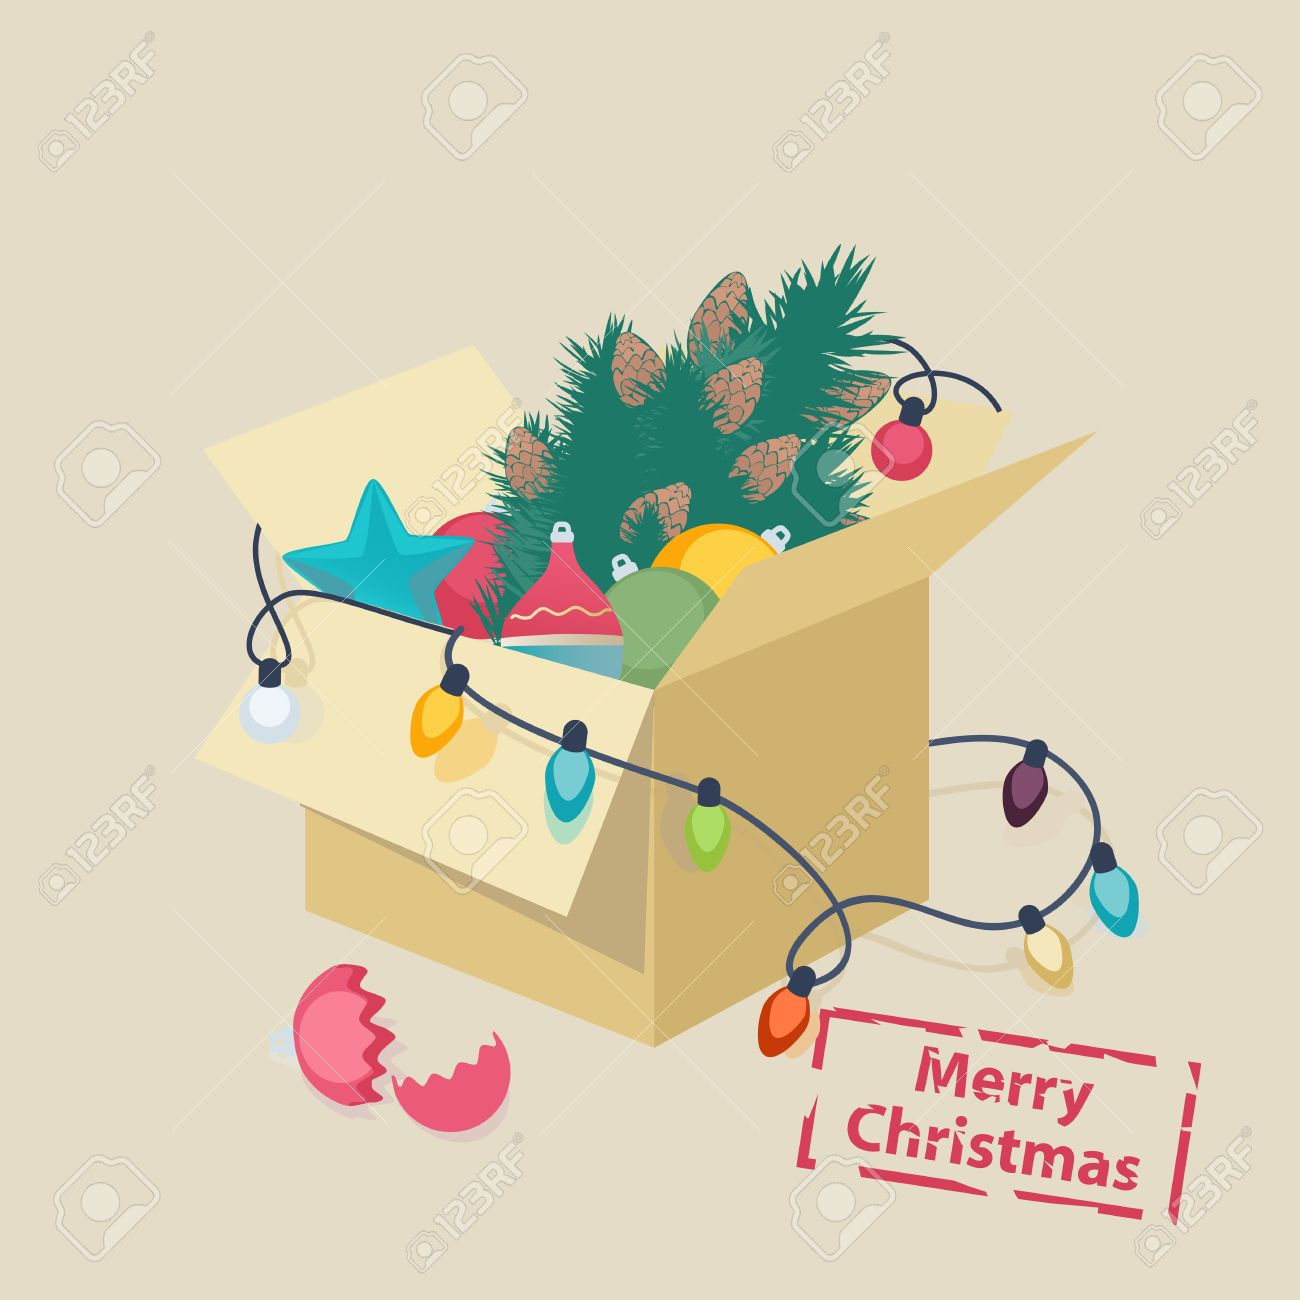 Christmas card design with a box of toys and colorful decorations, lights and a Christmas tree with a broken eggshell in front and the text - Merry Christmas Stock Vector - 31328665